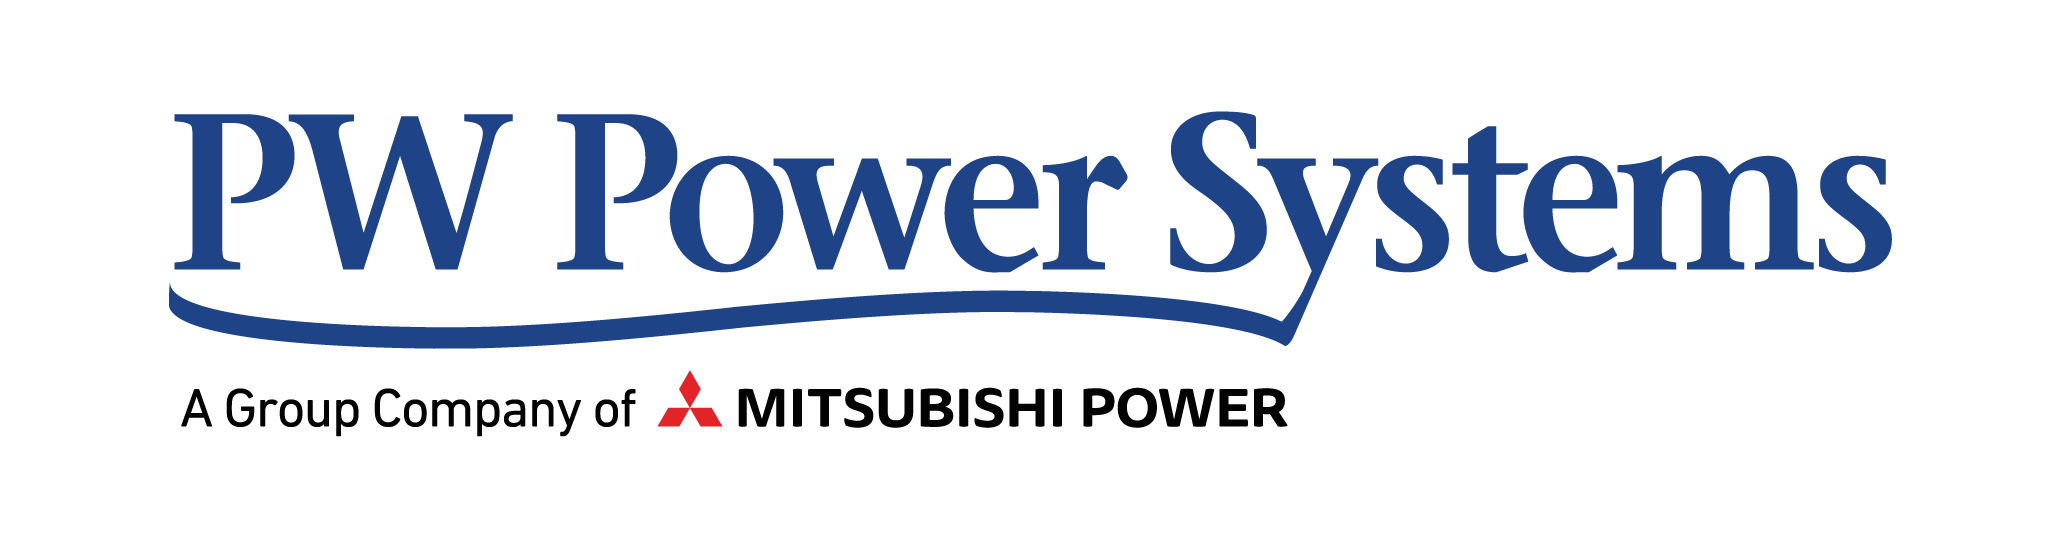 PW Power Systems (PWPS)